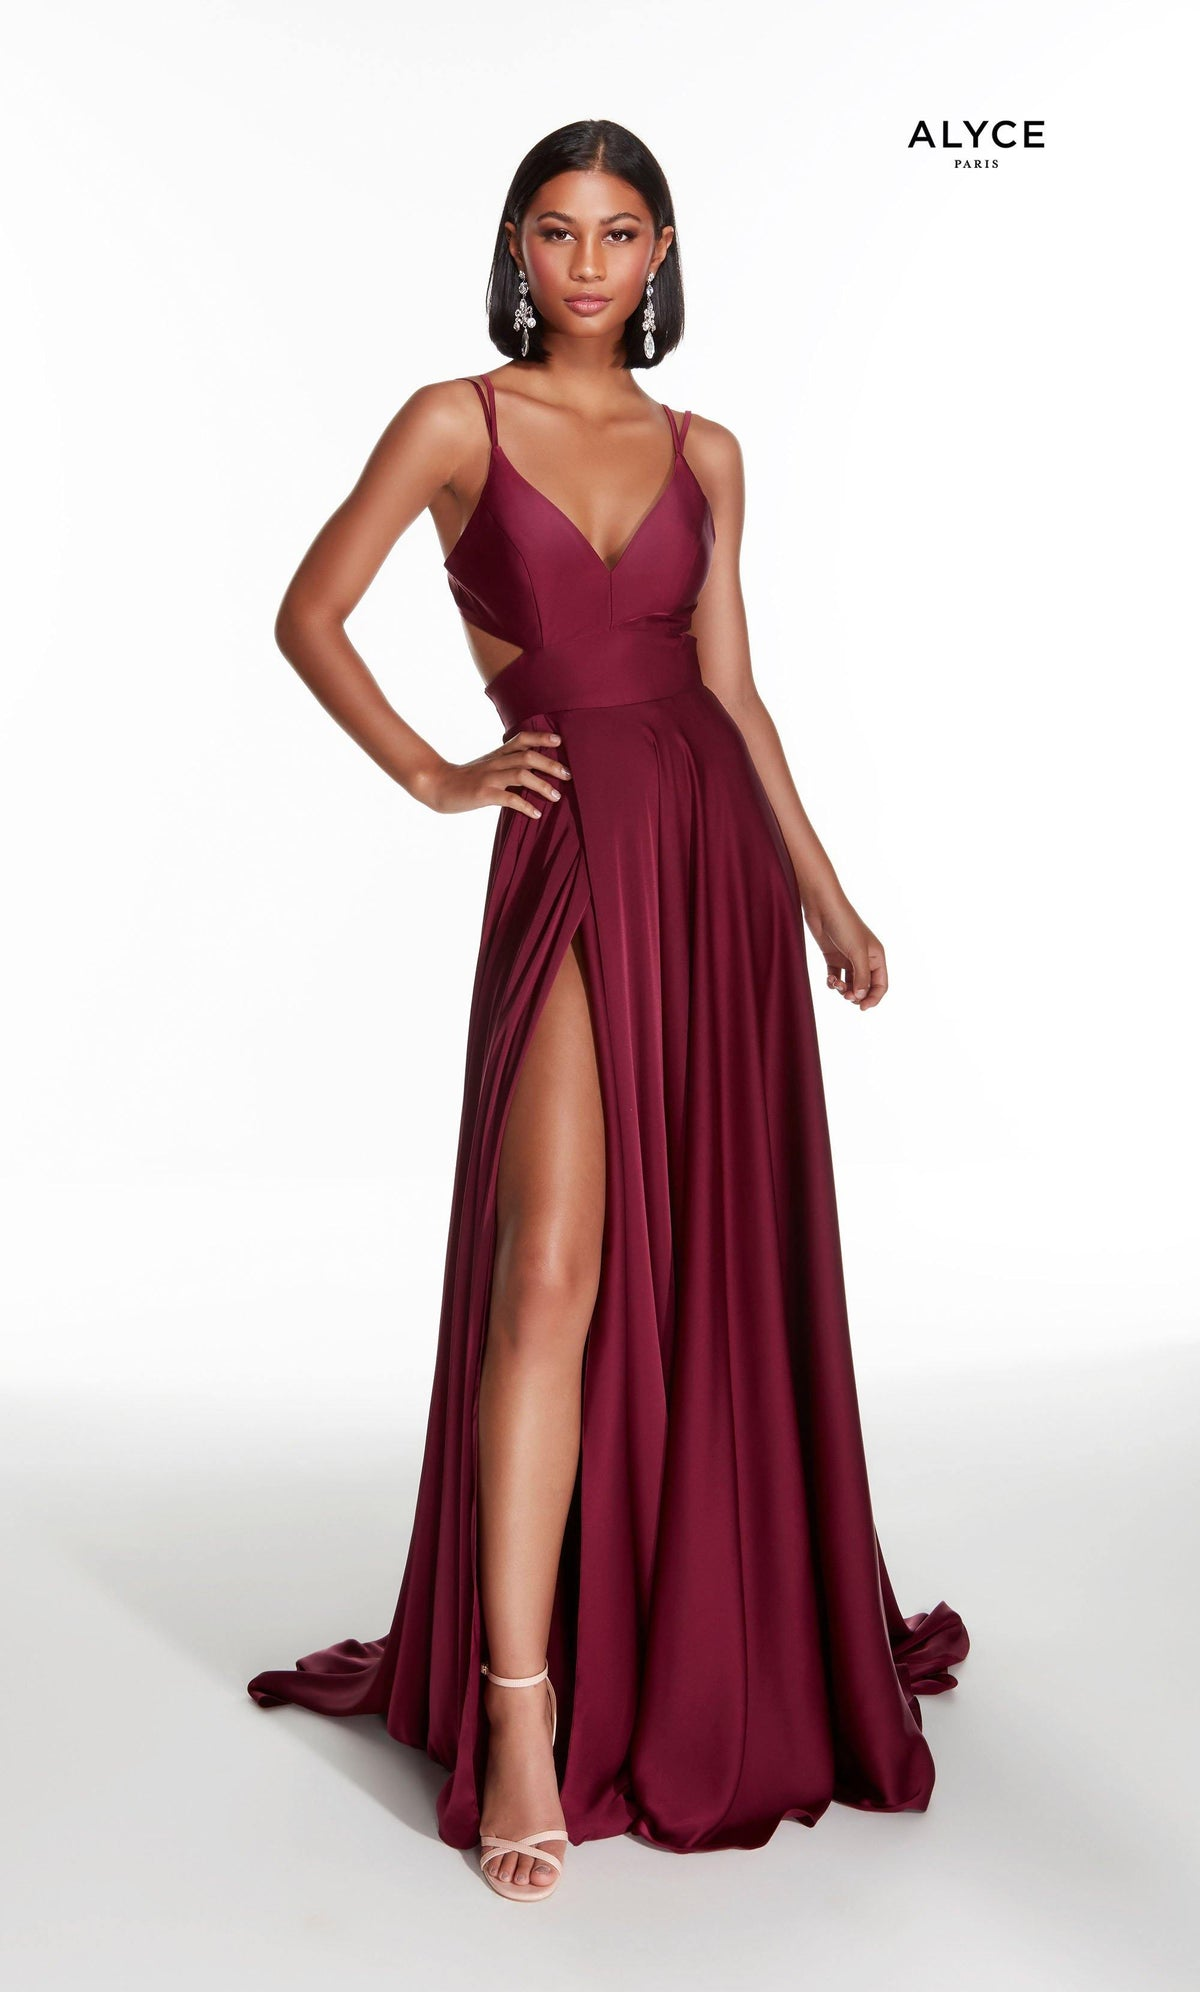 Wine Red flowy satin chiffon formal dress with a V neck, side cutouts, and front slit